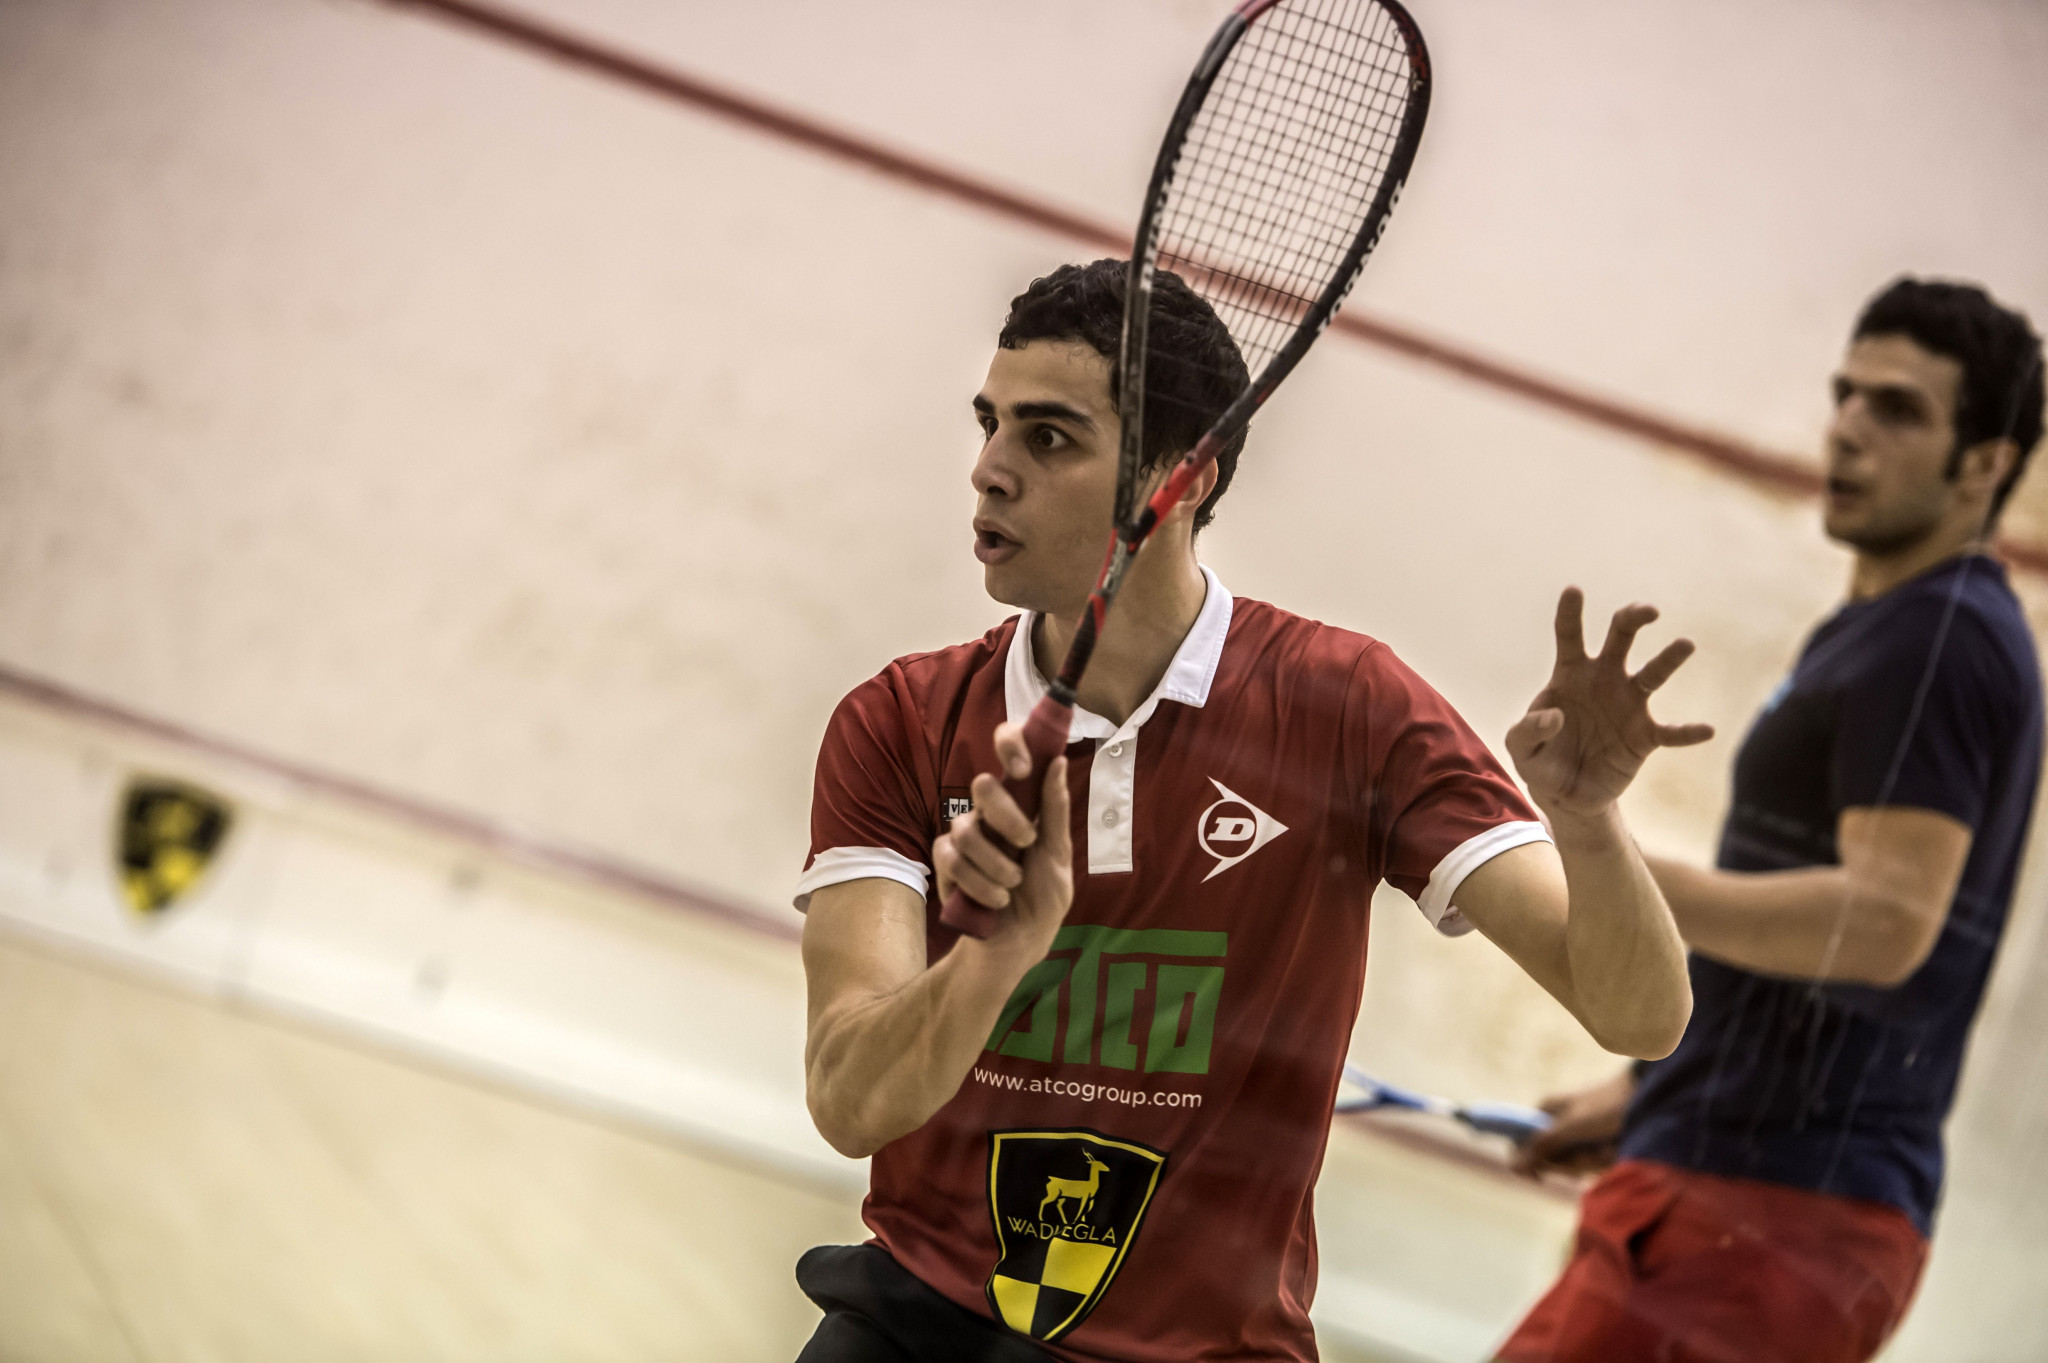 Farag climbs to number two in latest PSA men's rankings